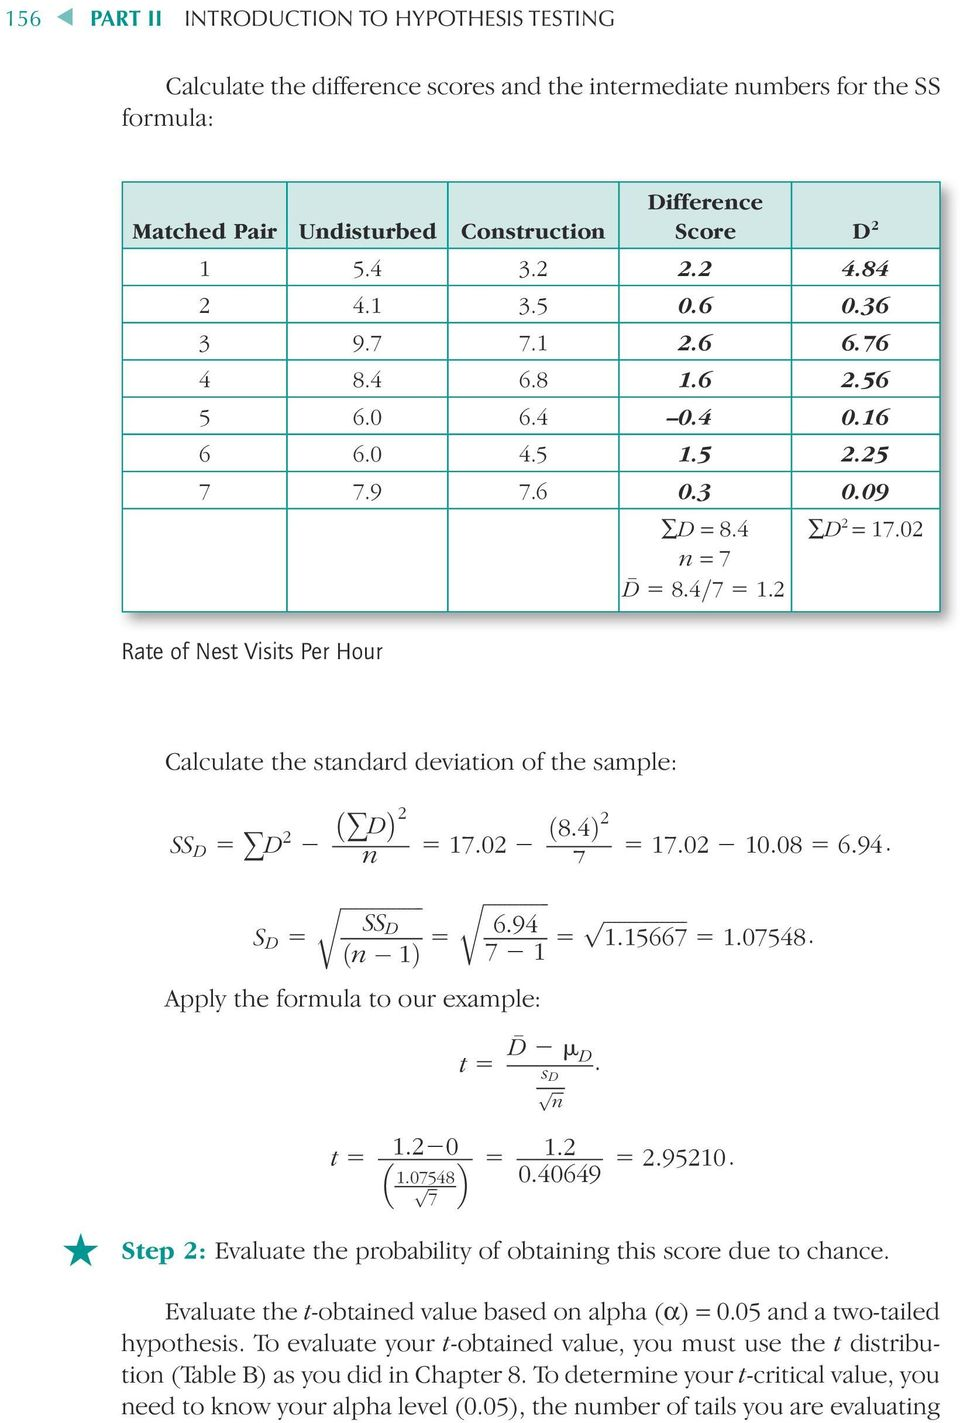 02 Calculate the standard deviation of the sample: SS D 5 +D 2 2 +D 2 n 5 17:02 2 ð8:4þ2 7 5 17:02 2 10:08 5 6:94.